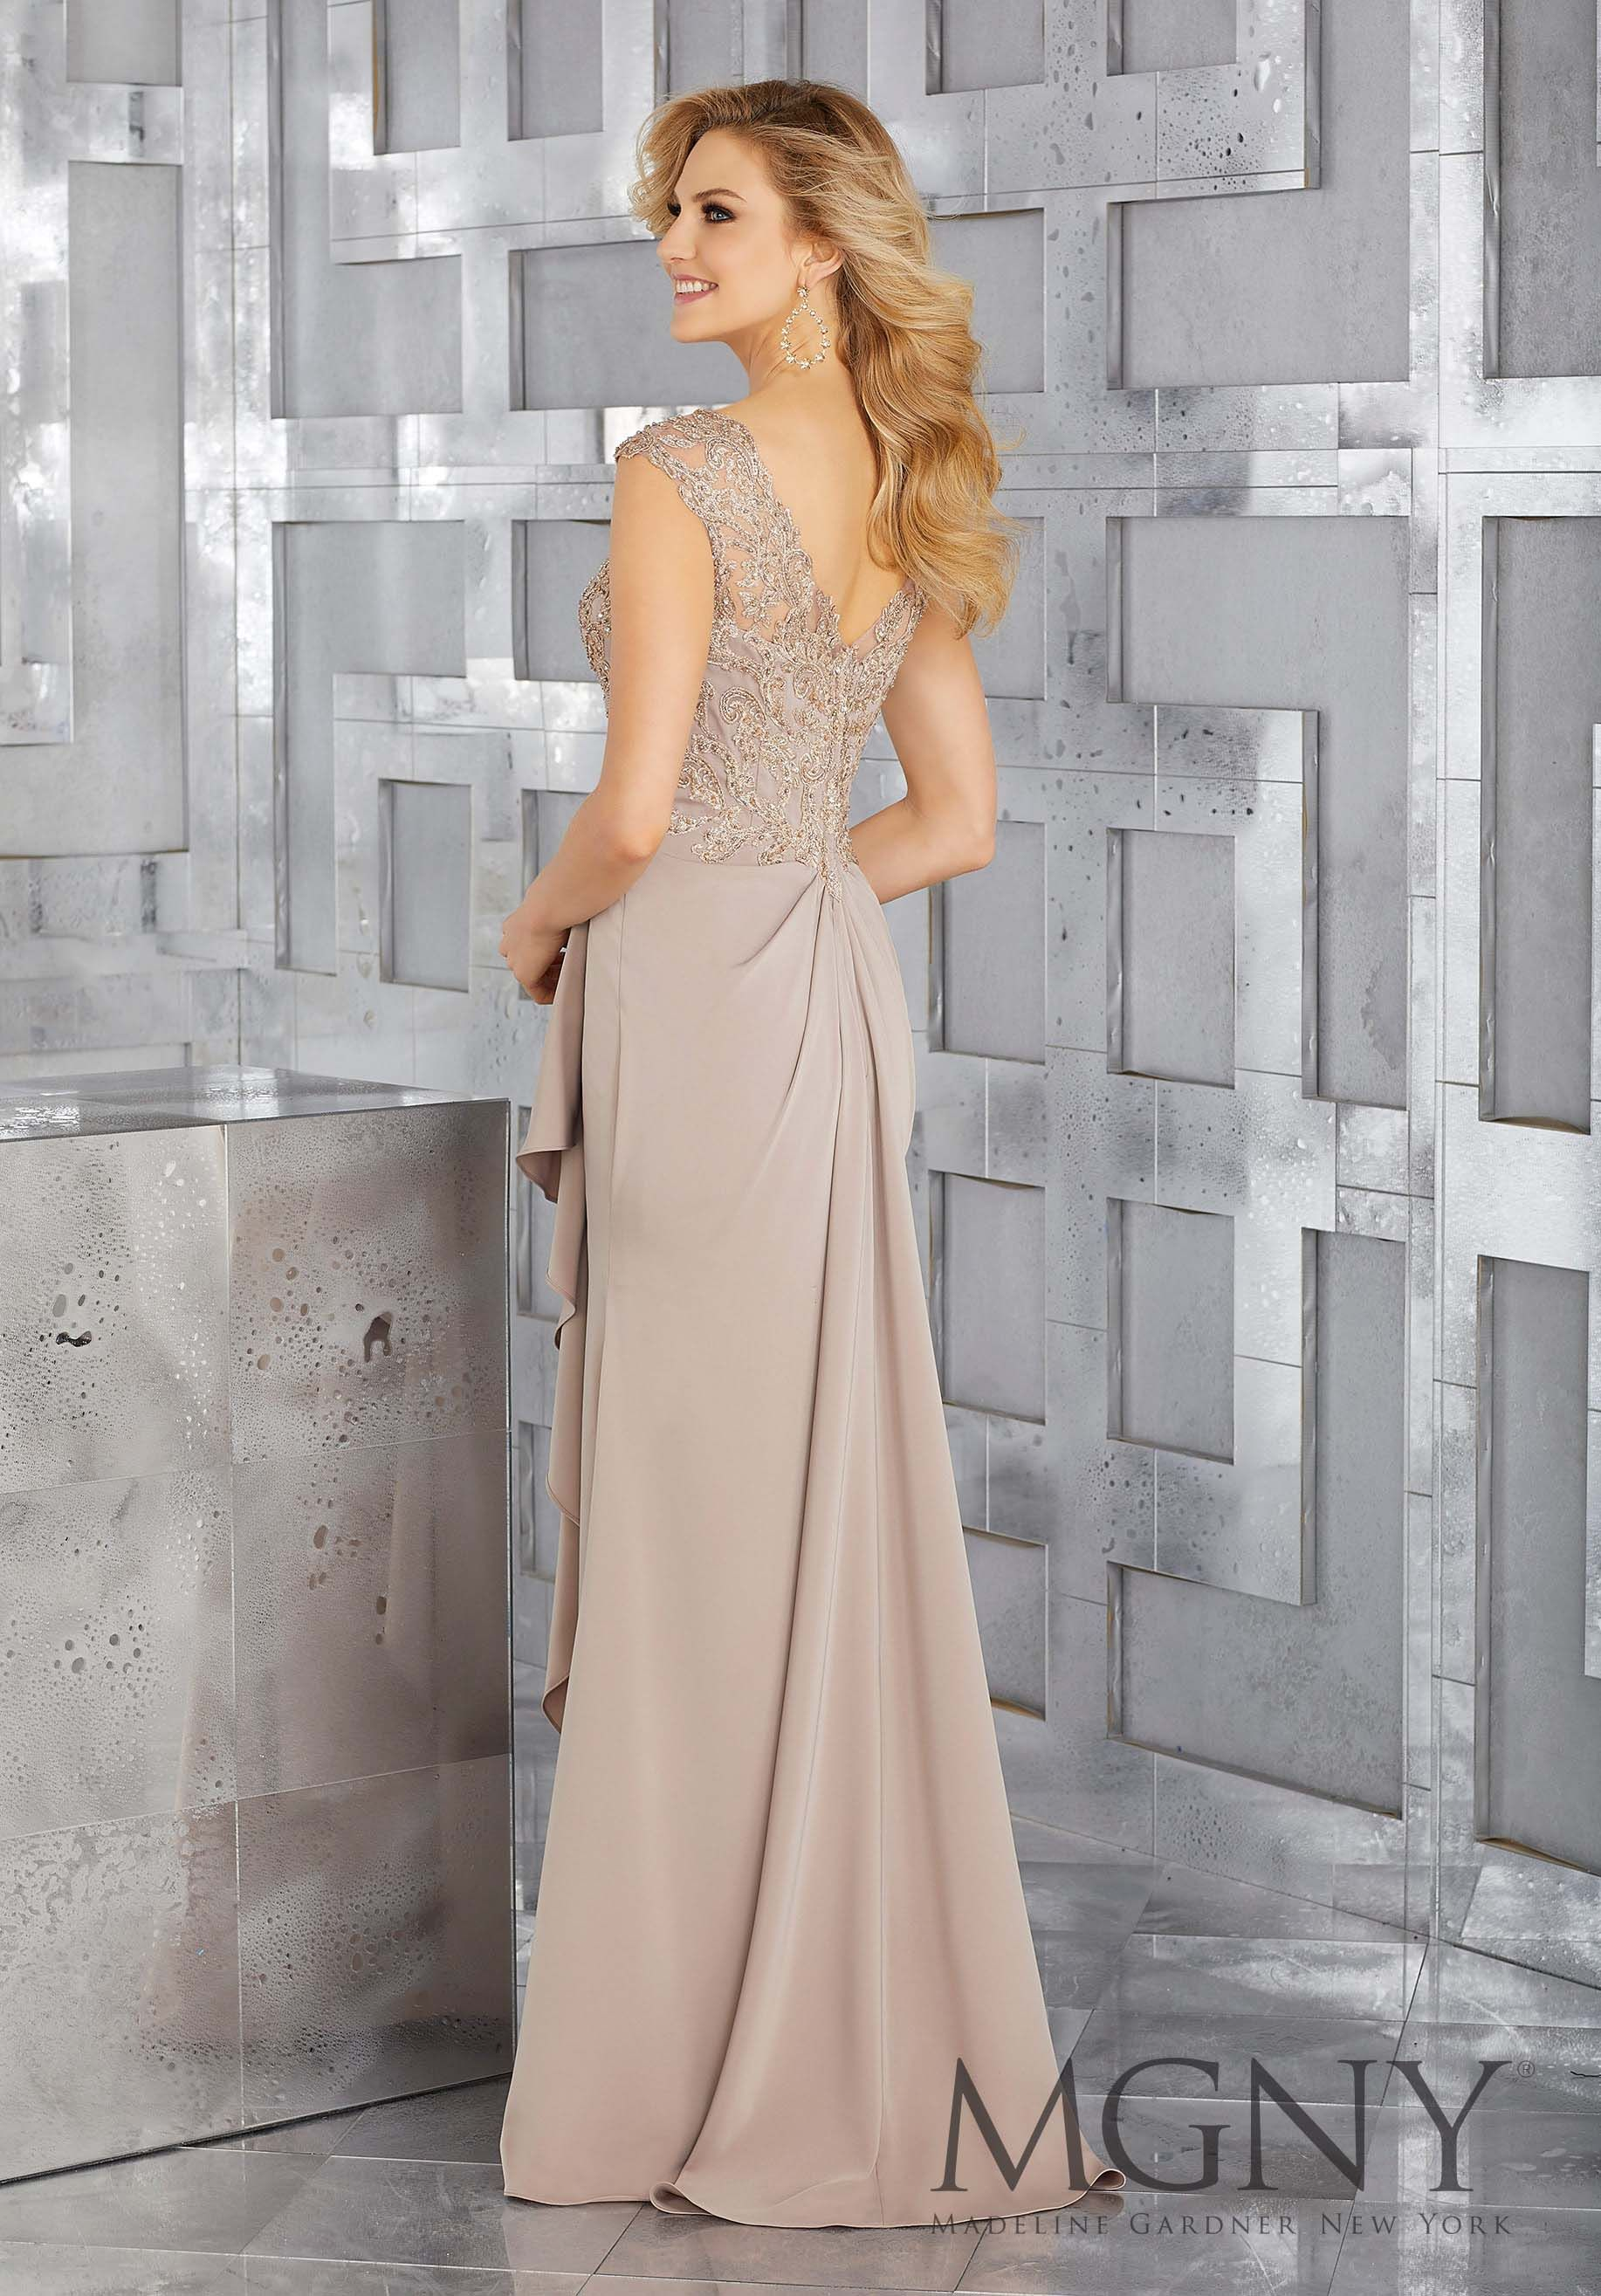 Crepe Mother Of The Bride Gown With Beaded Embroidery And Draping At The Waist Morilee Mother Of The Bride Gown Mother Of The Bride Dresses Mother Of Groom Dresses [ 2630 x 1834 Pixel ]